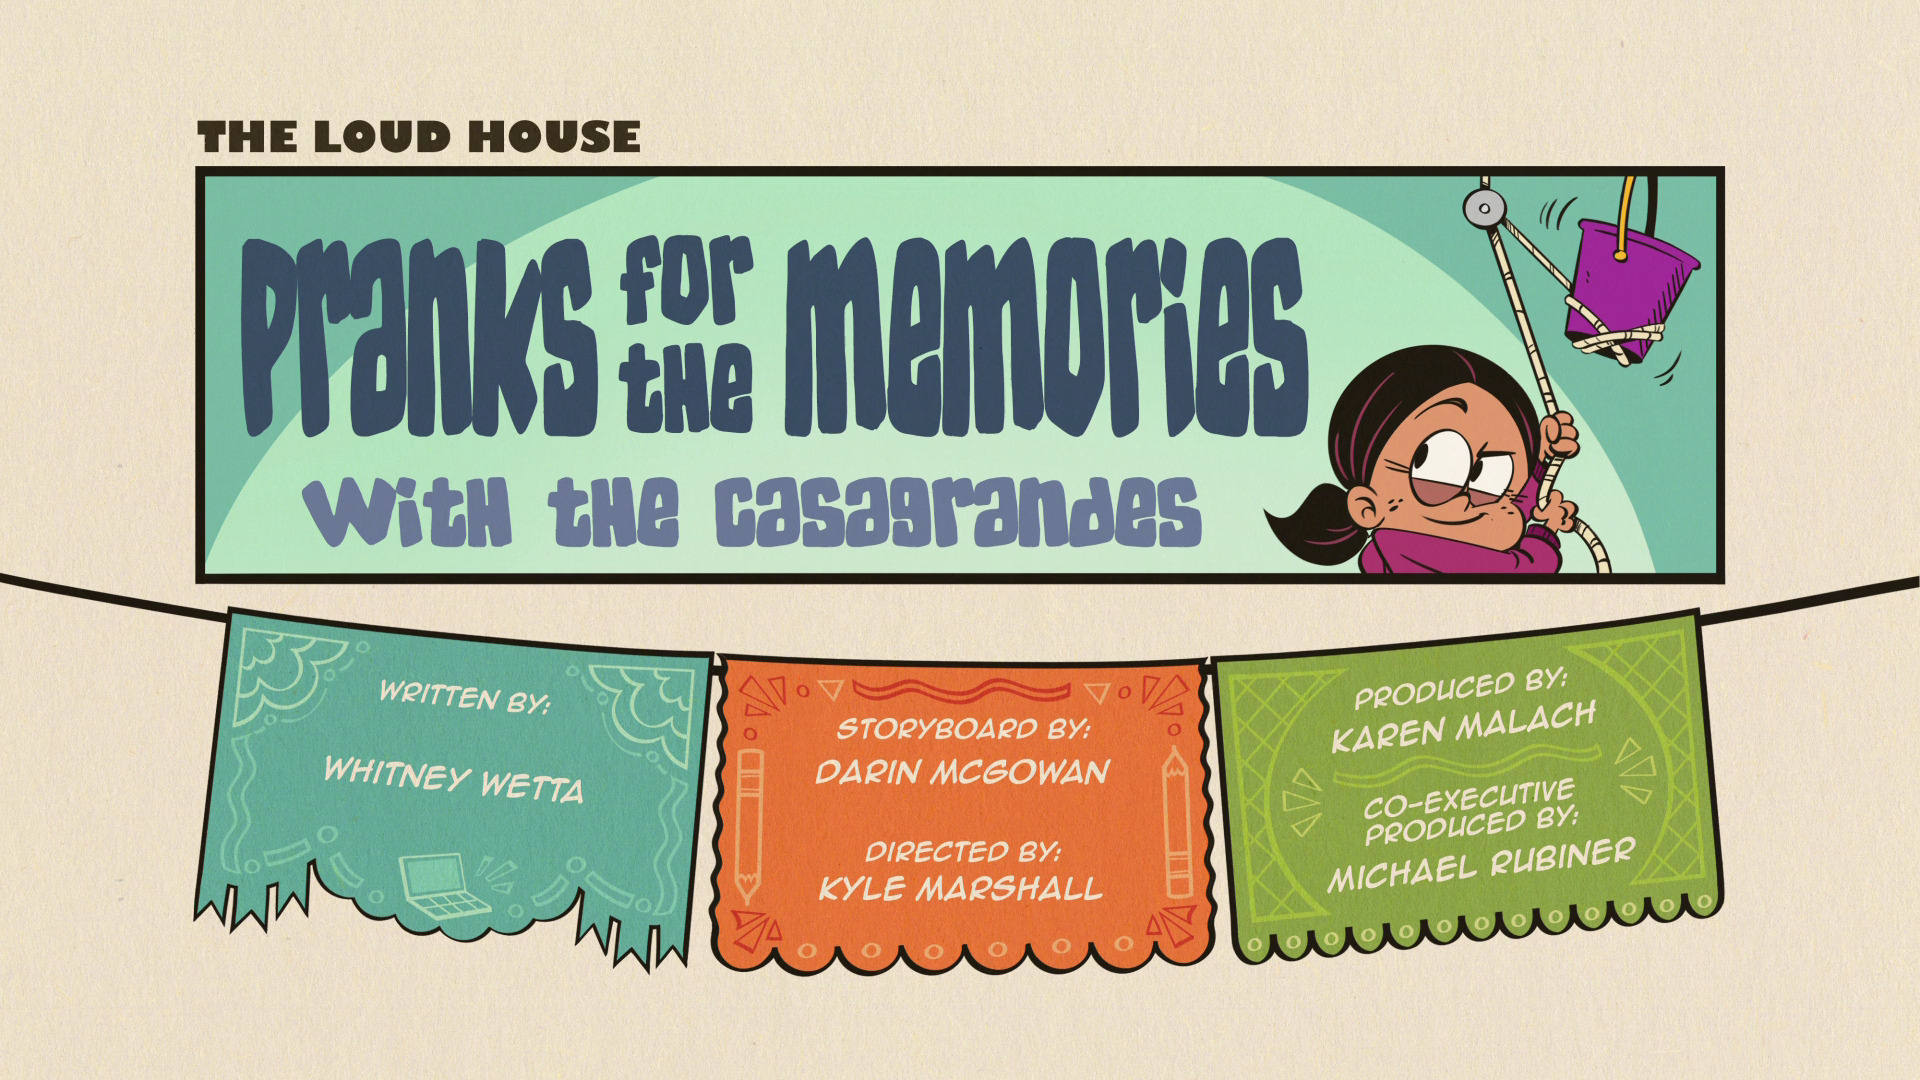 Pranks for the Memories with the Casagrandes